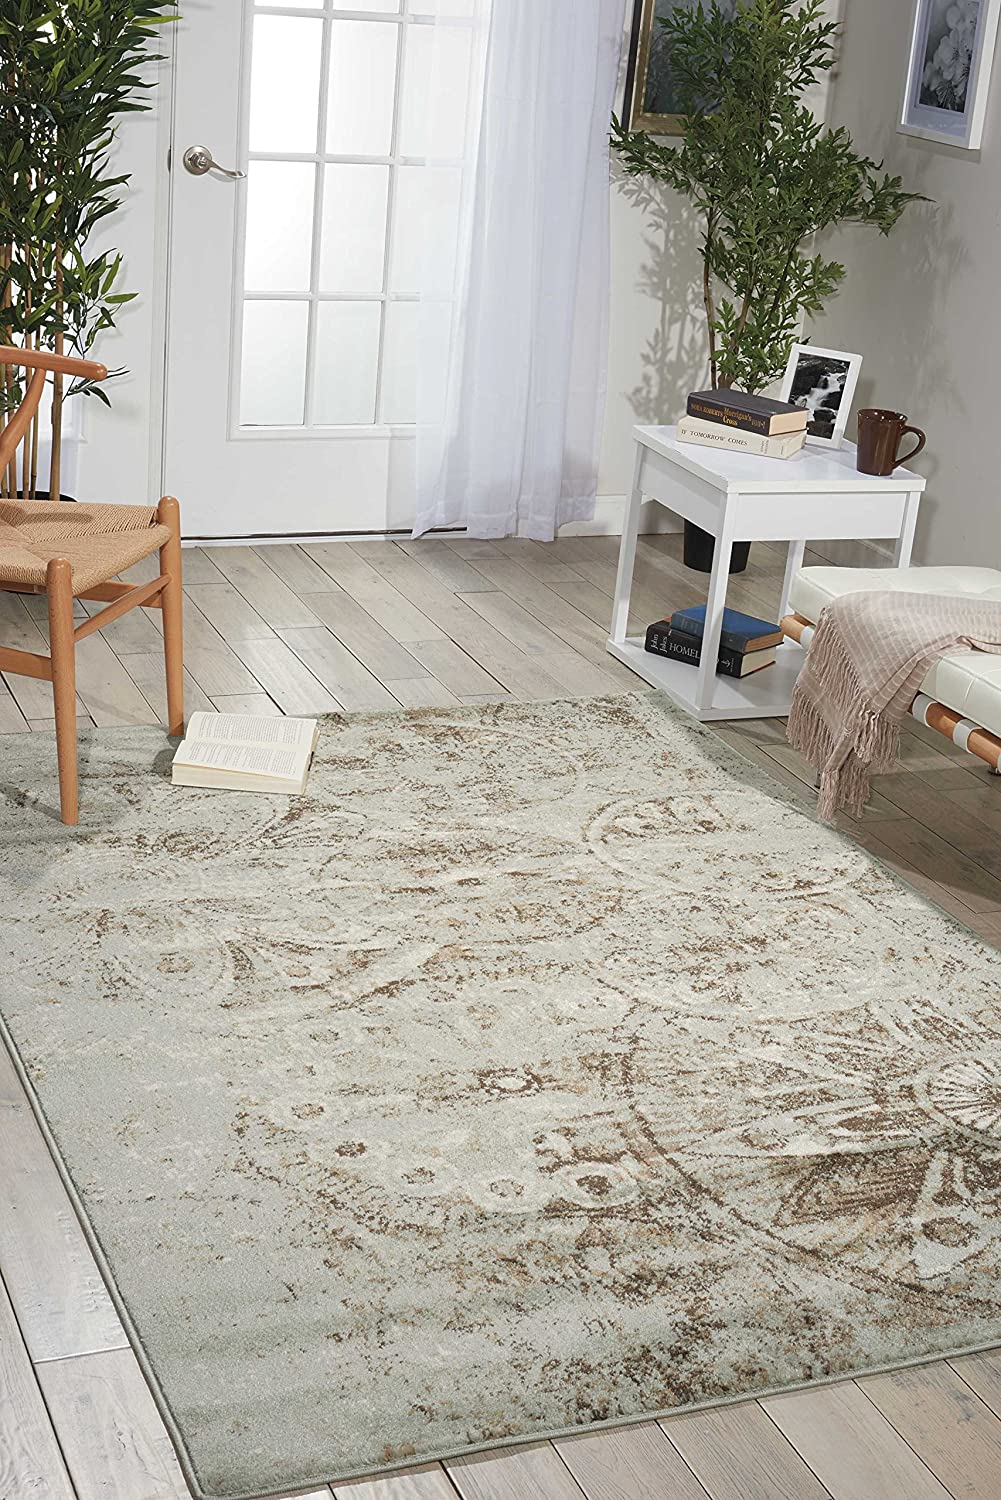 Nourison Euphoria Traditional Rustic Vintage Rug Area Super SEAL limited product beauty product restock quality top 3 Fee Grey